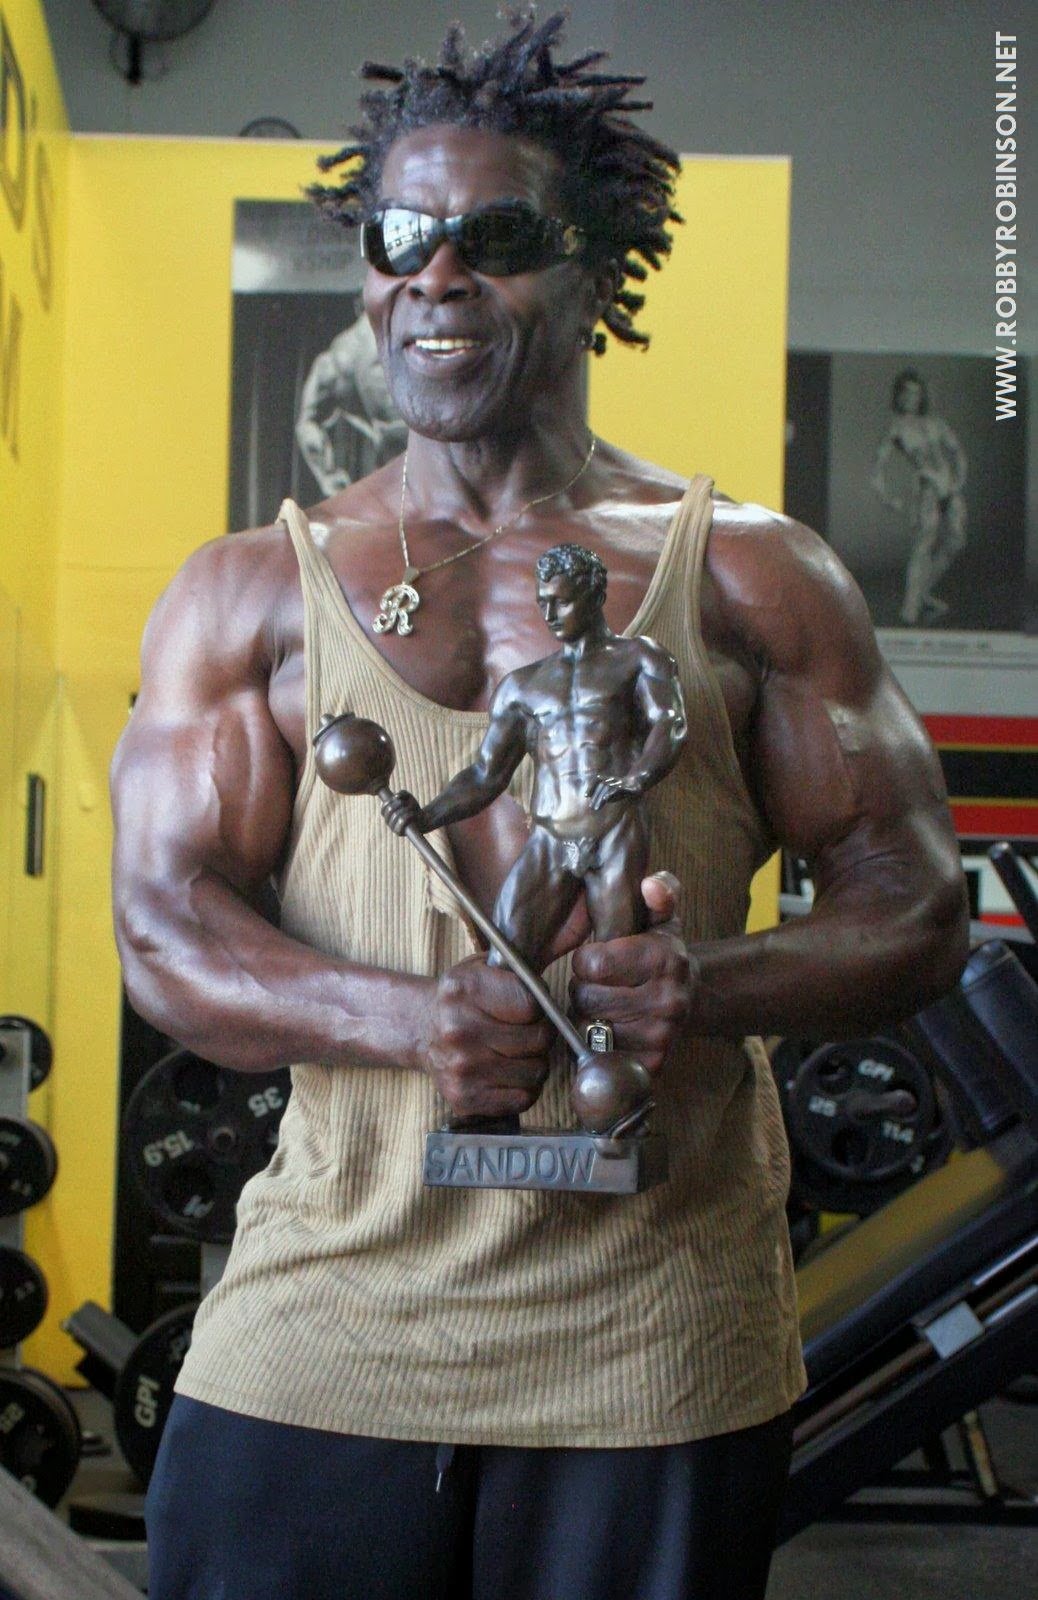 ROBBY ROBINSON WITH SANDOW TROPHY WINNING FIRST MR OLYMPIA MASTERS 1994 WORKOUT & POSING AT GOLD'S, CA 2008 ● www.robbyrobinson.net/books.php ●